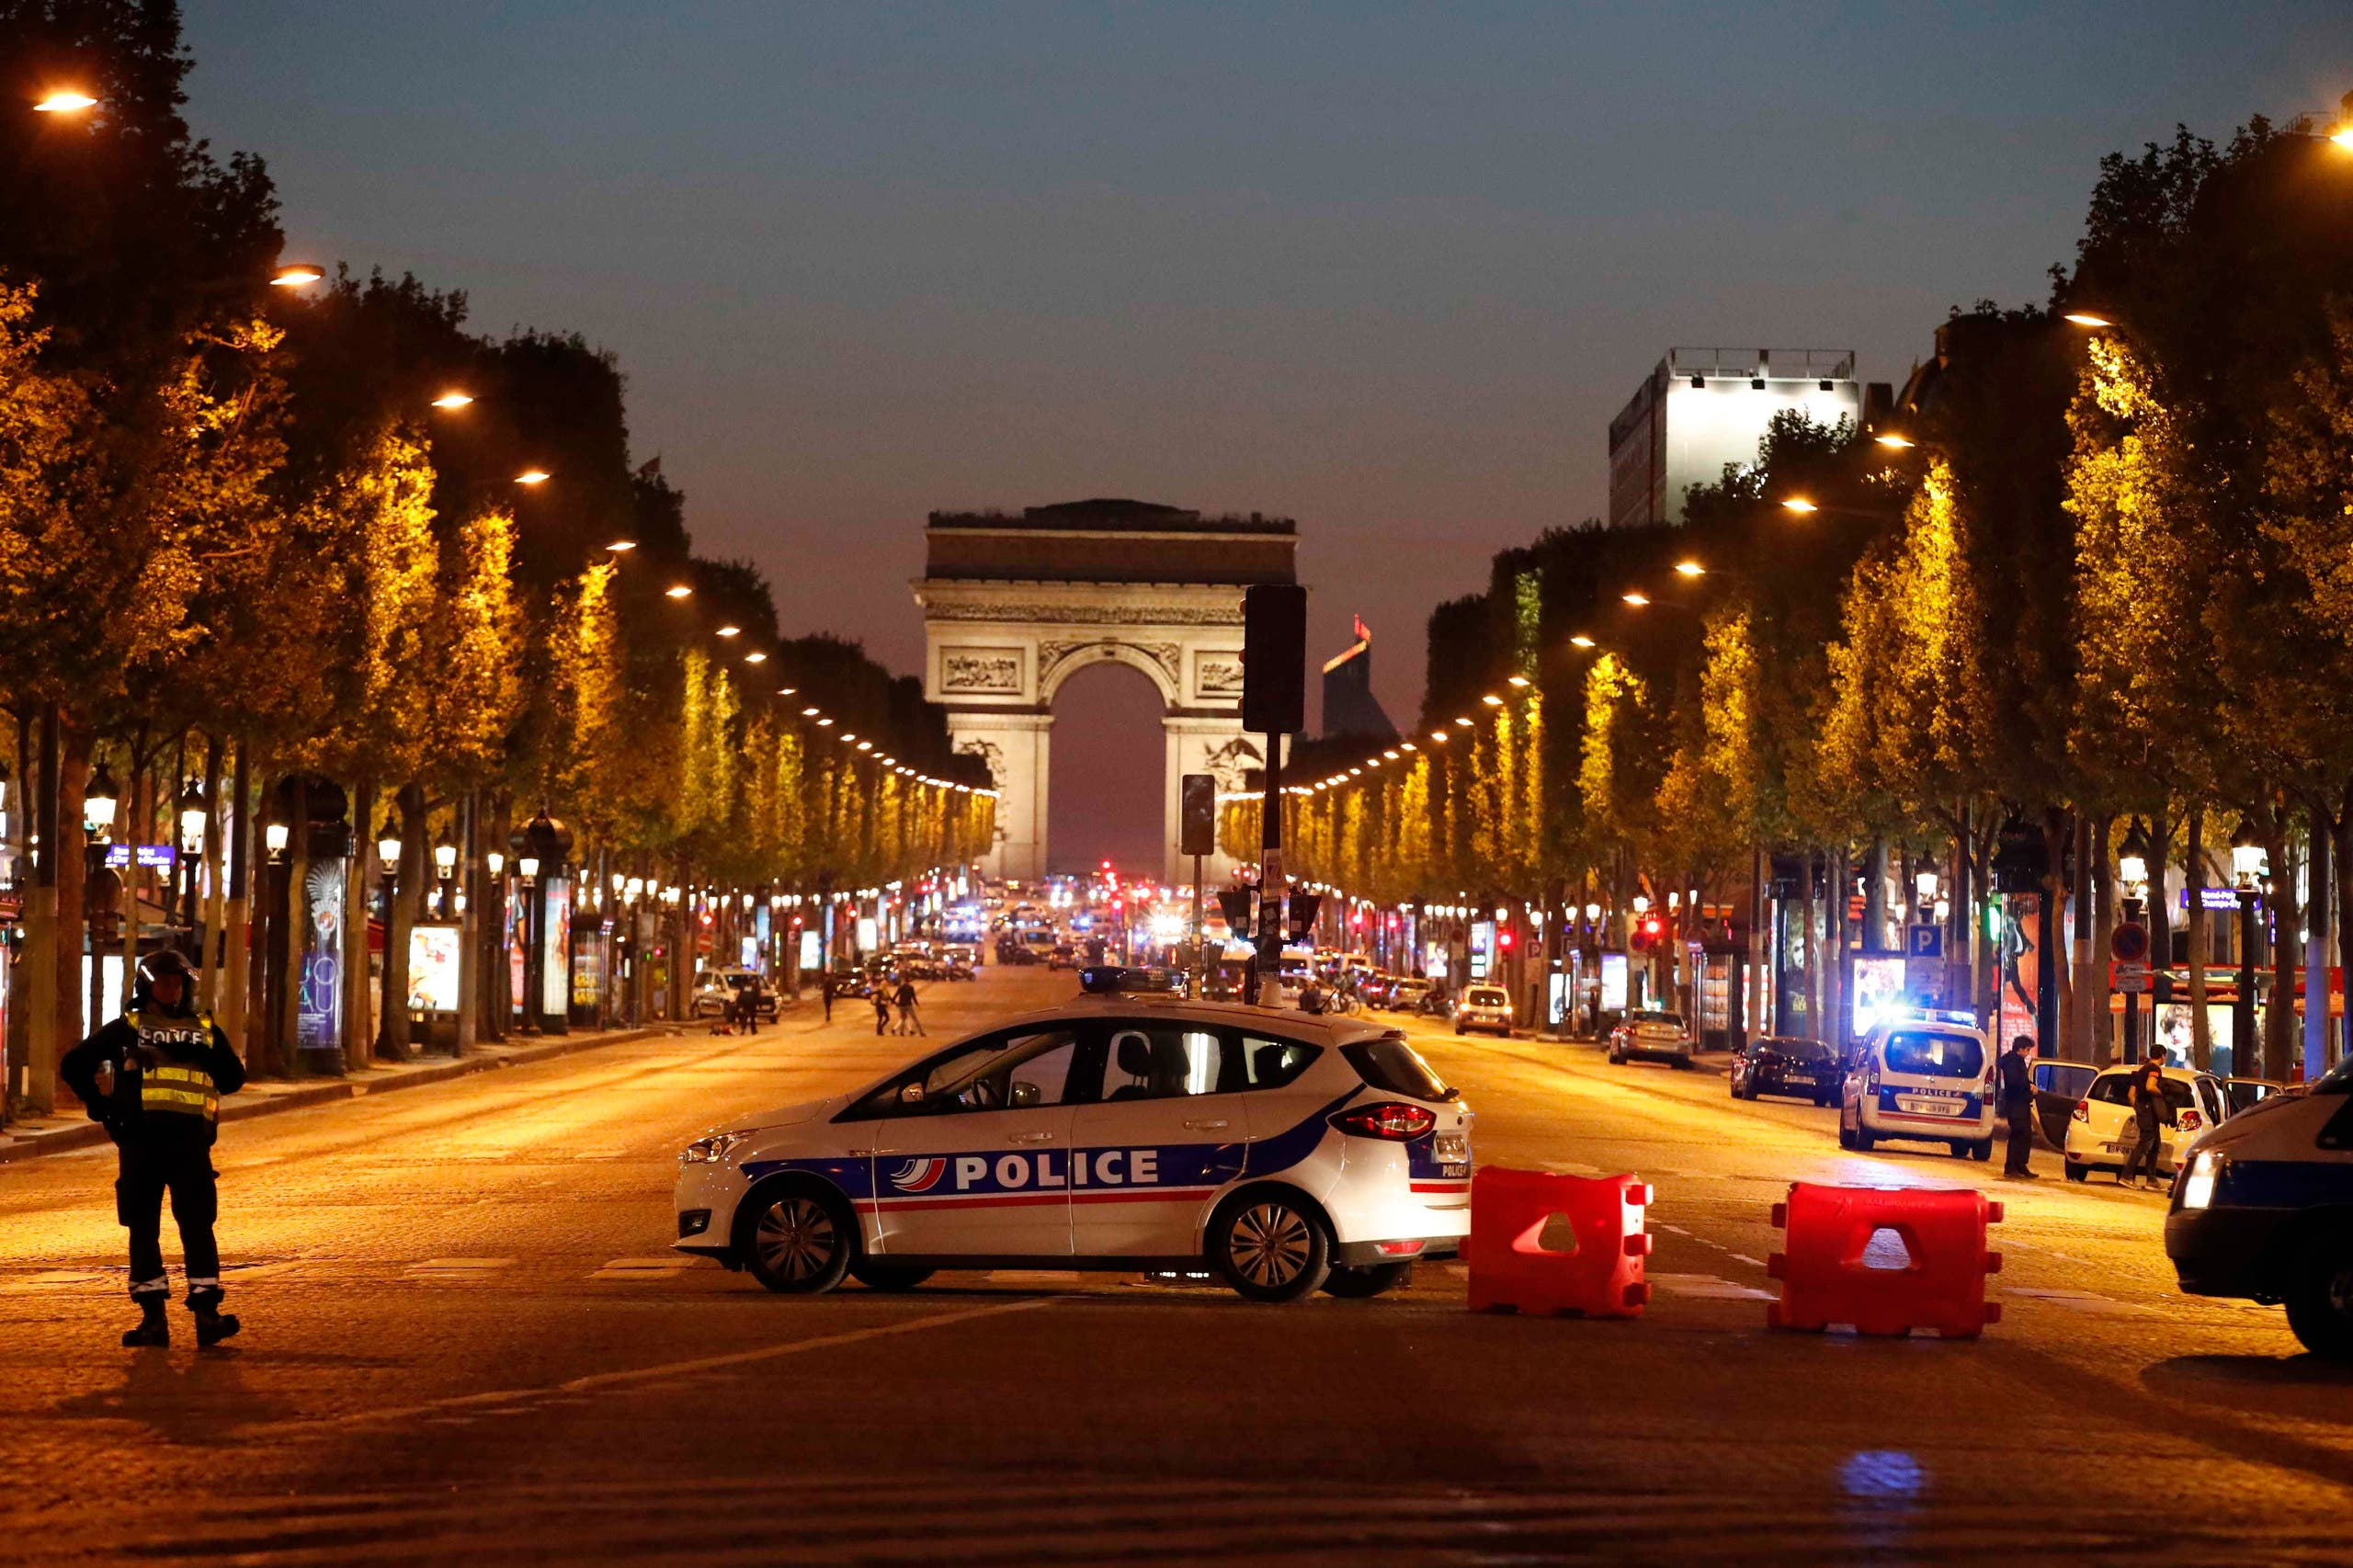 Police secure the Champs Elysee Avenue after one policeman was killed and another wounded in a shooting incident in Paris, France, April 20, 2017. (Reuters